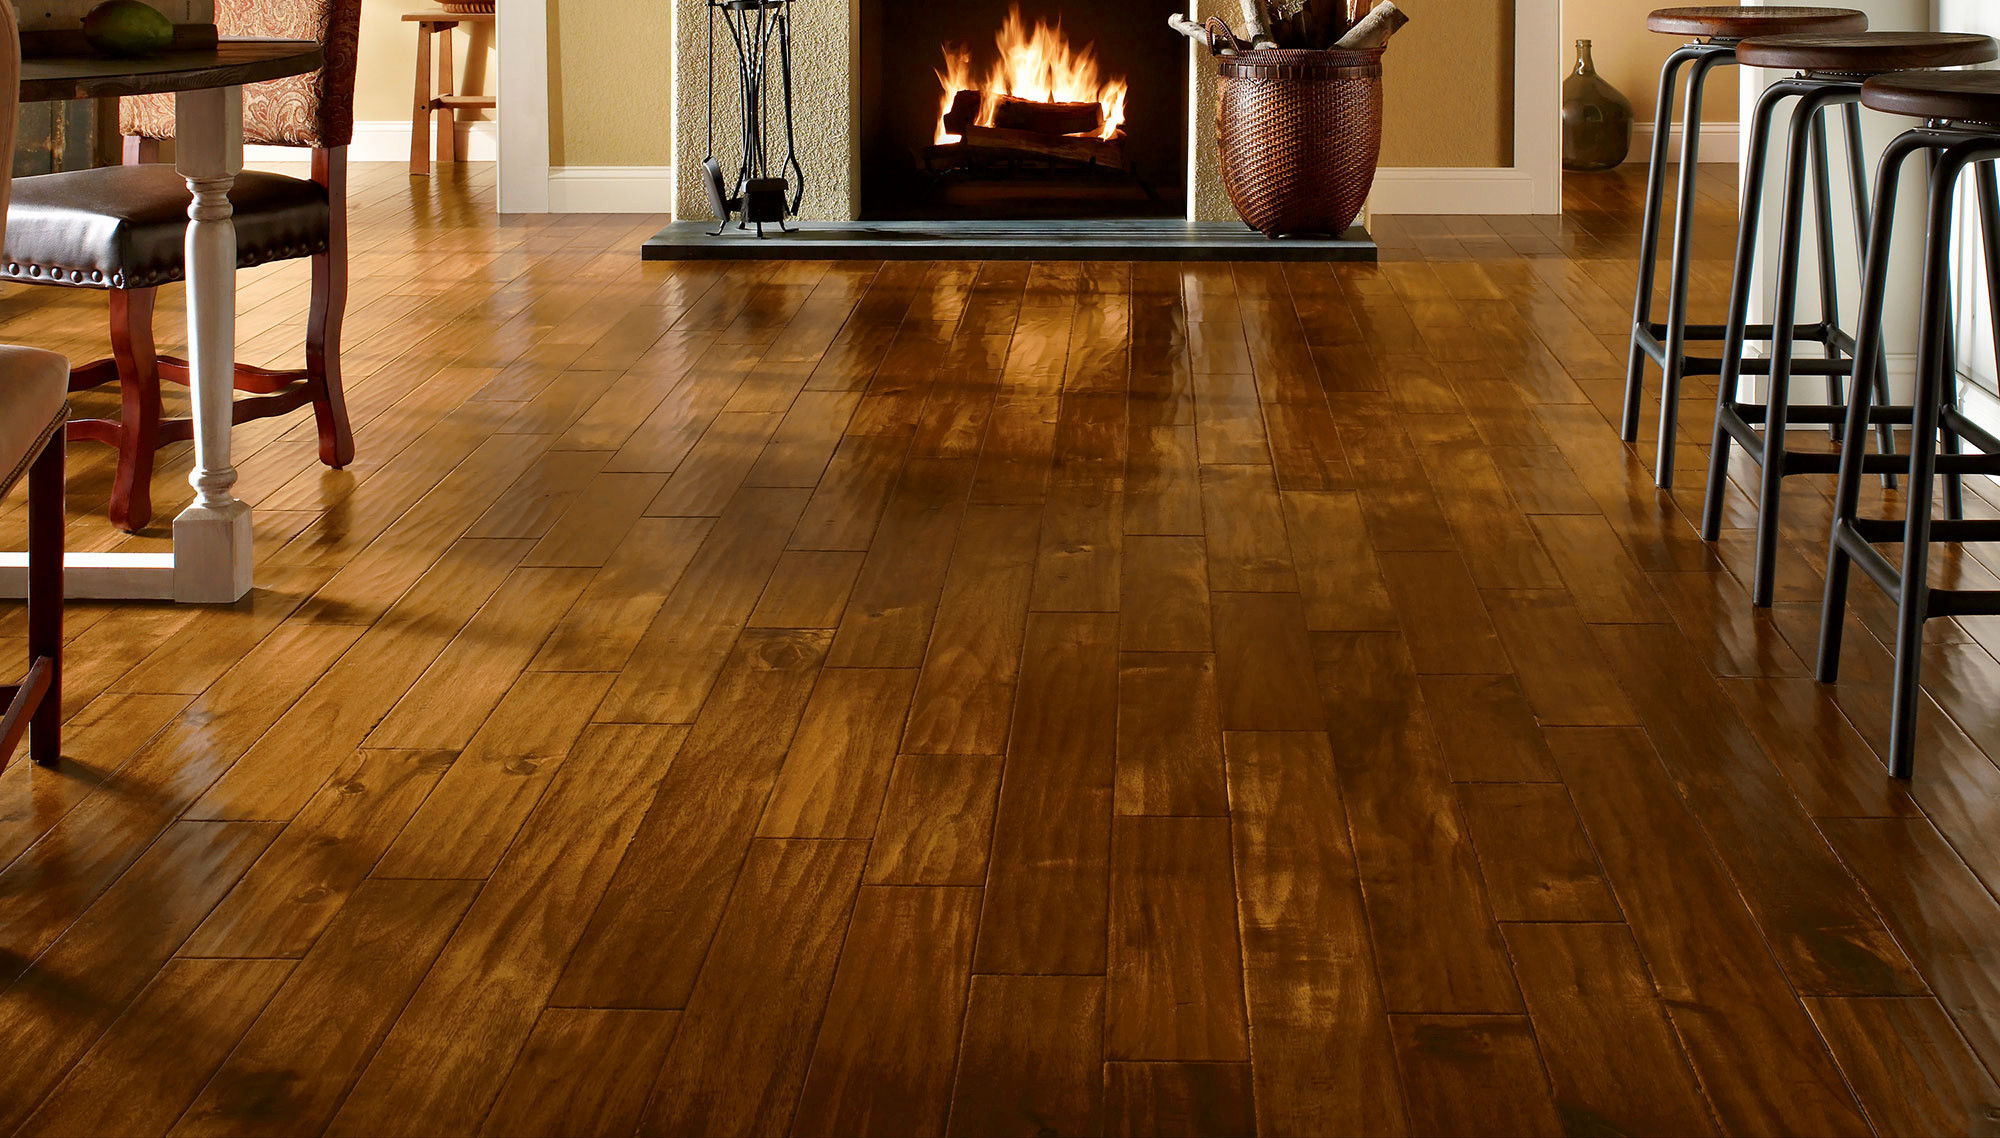 hardwood flooring liquidators toronto of hardwood floor installation archives wlcu intended for hardwood floor designs best of appealing discount hardwood flooring 1 big kitchen floor hardwood floor